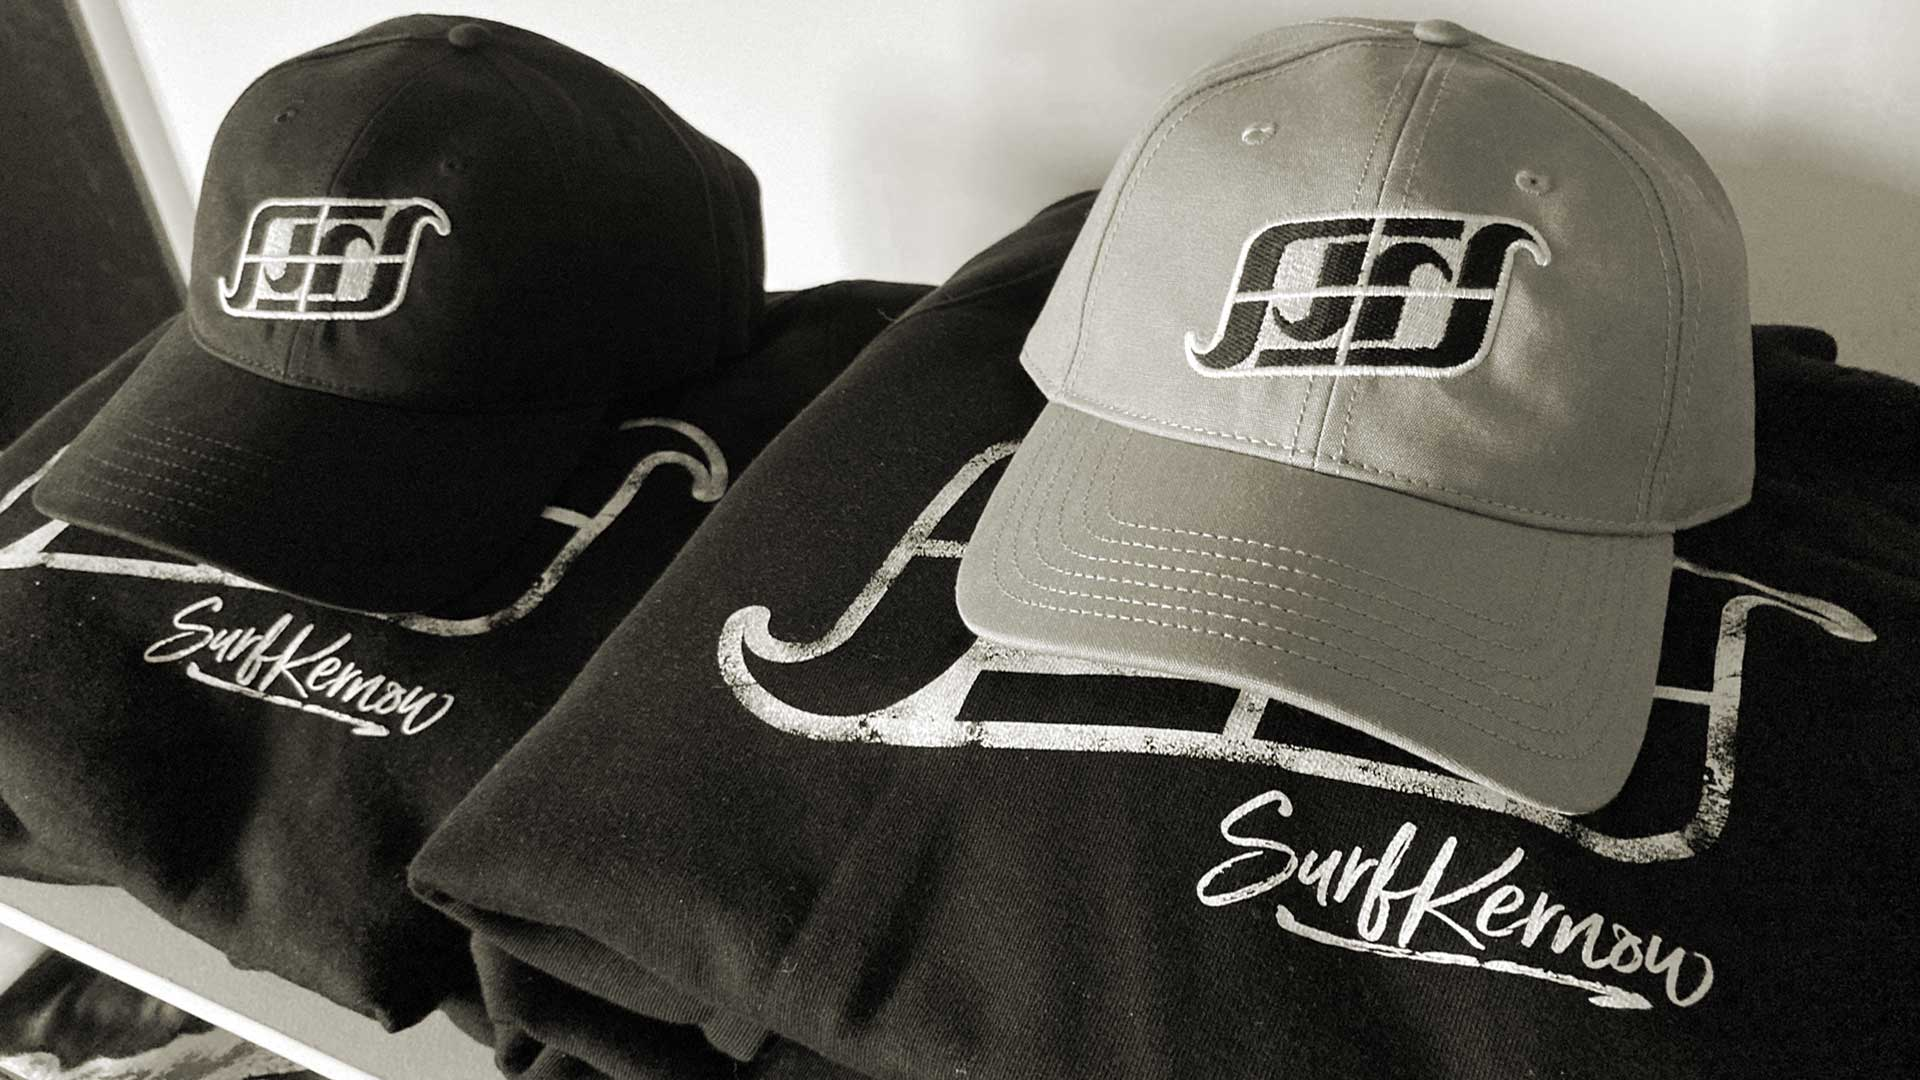 Surf Kernow shop products including organic baseball caps and hoodies.